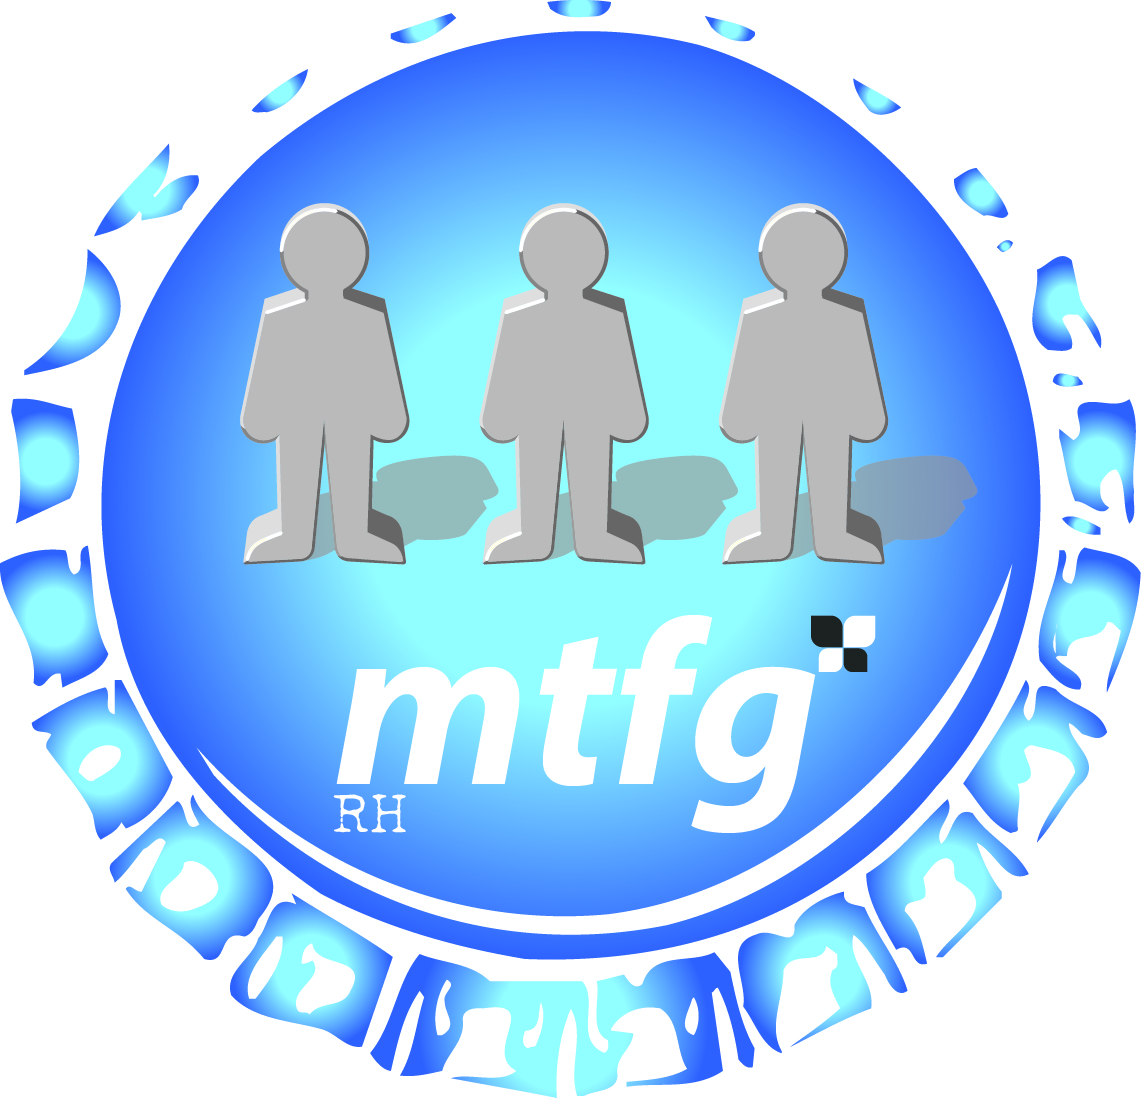 MTFG Ressources humaines